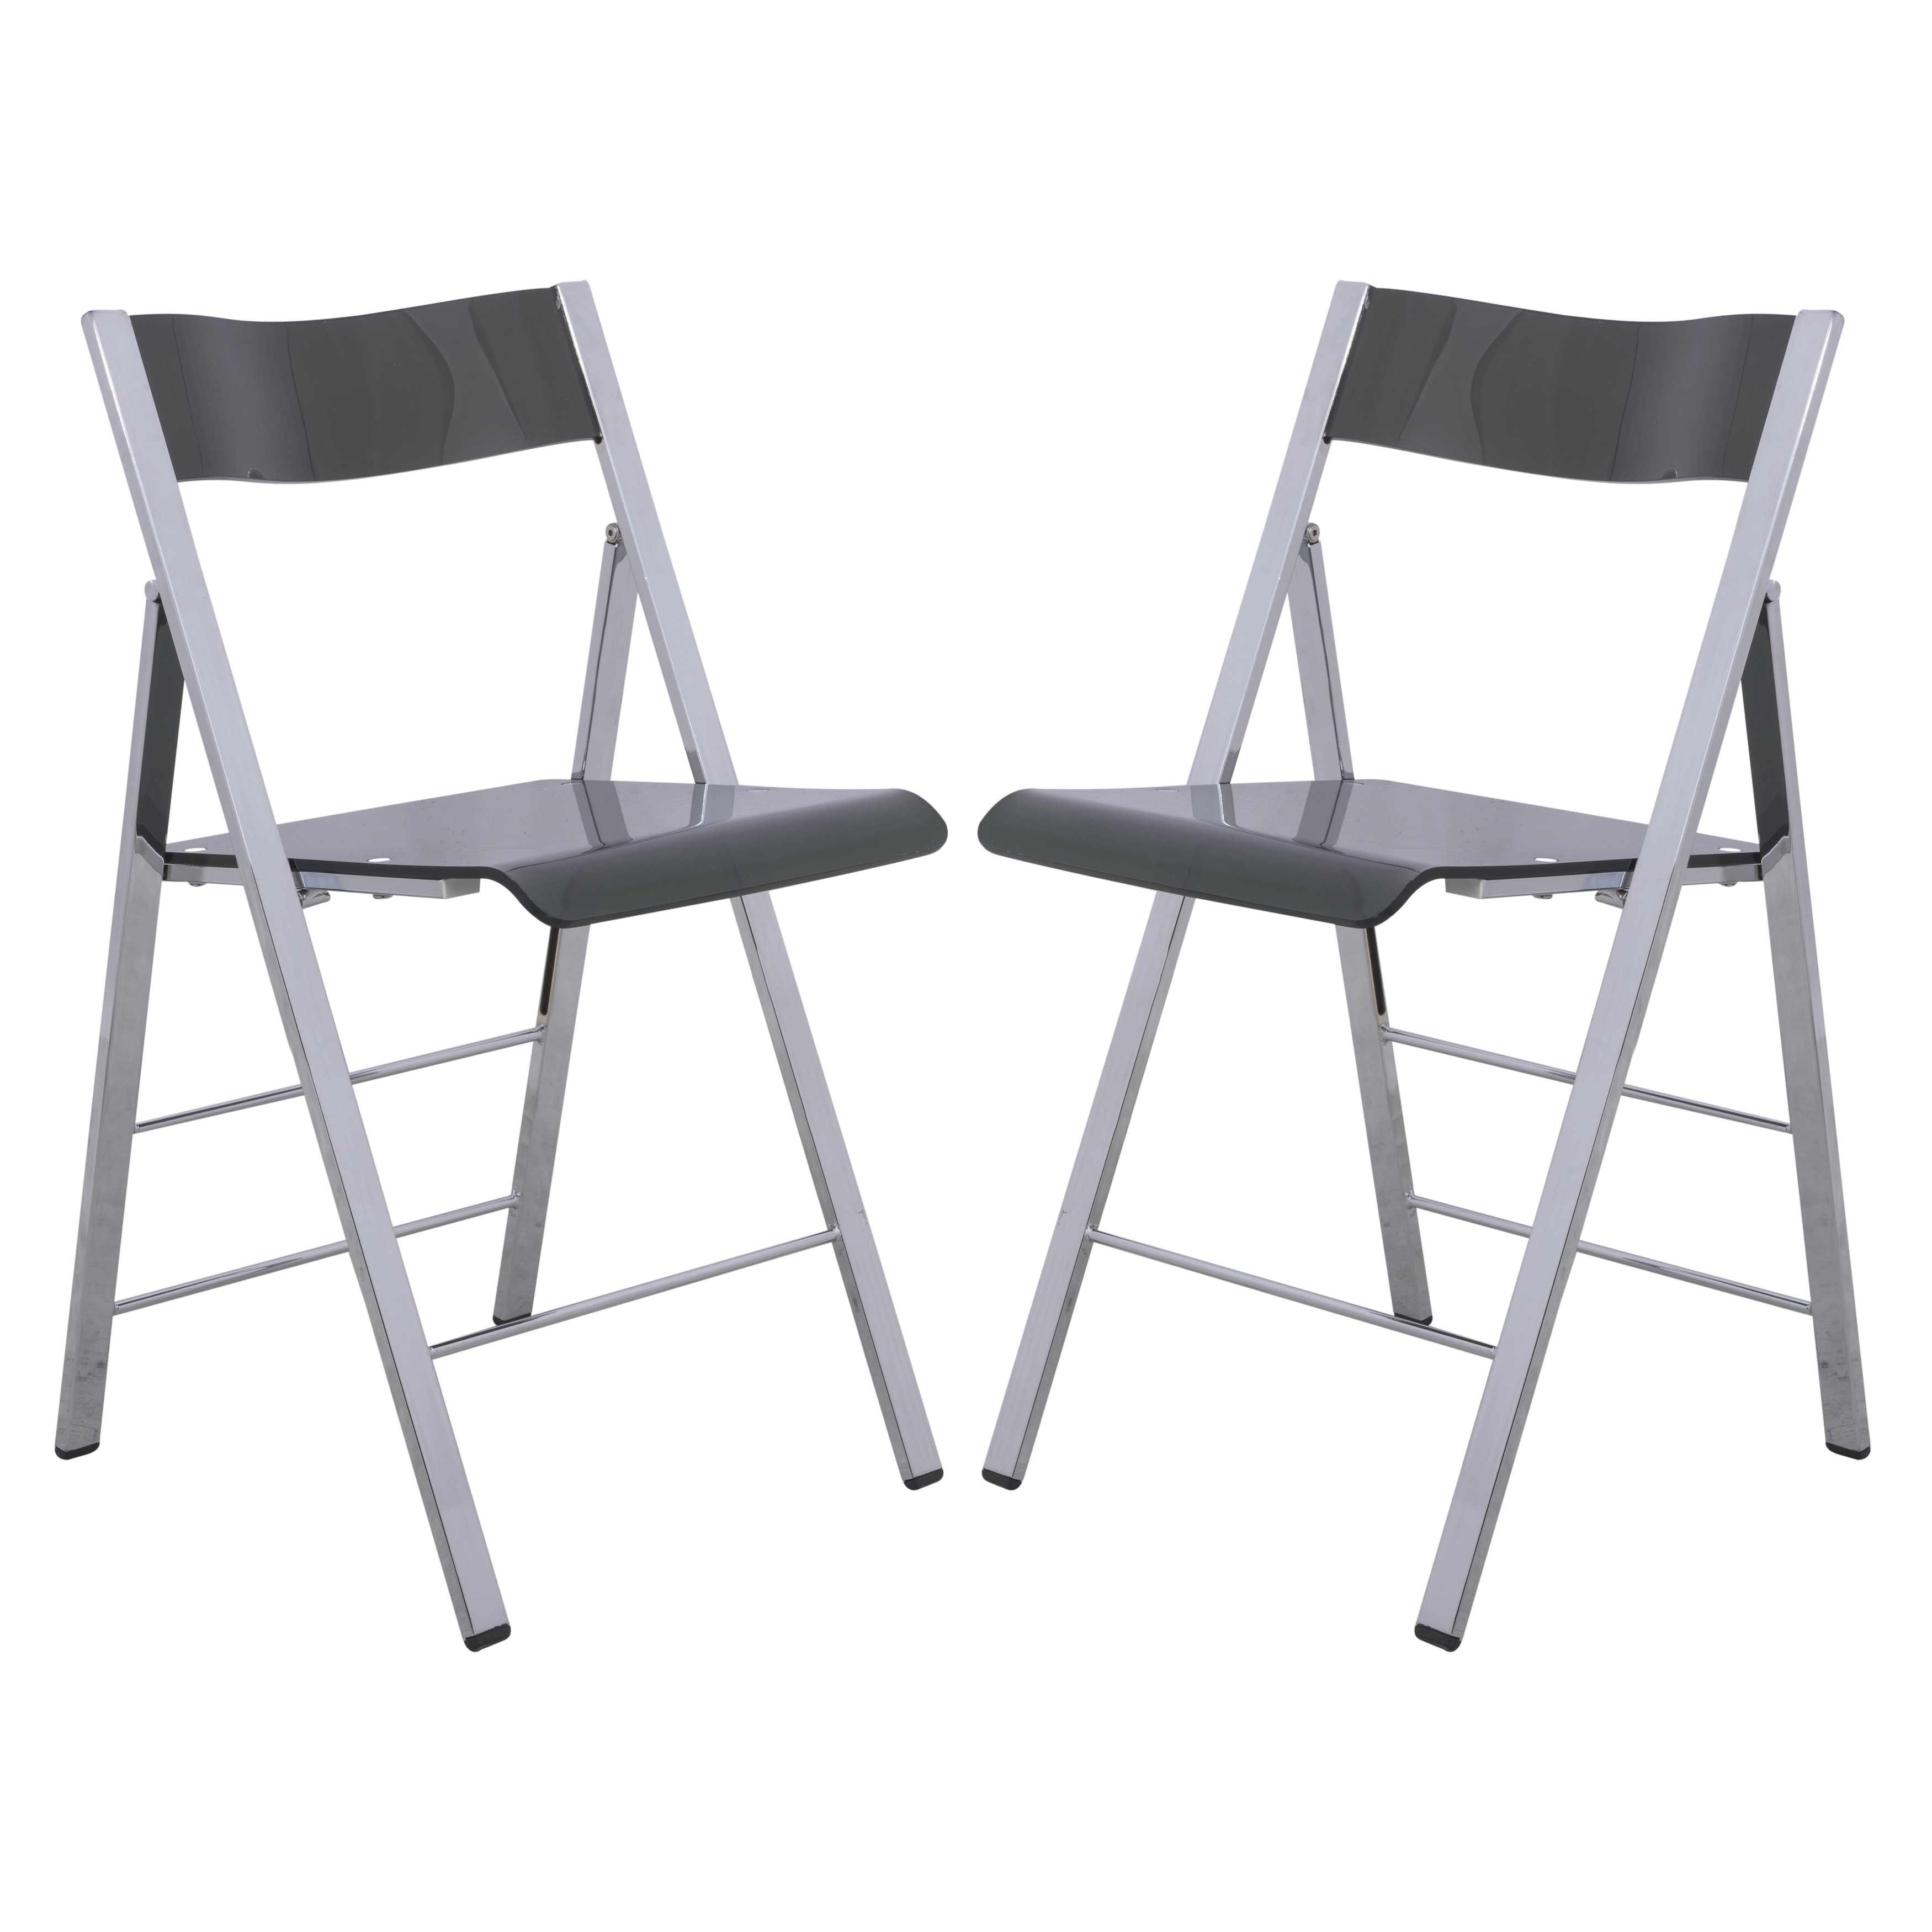 LeisureMod Menno Transparent Black Acrylic Folding Chair (Set Of 2)   Free  Shipping Today   Overstock   17801597